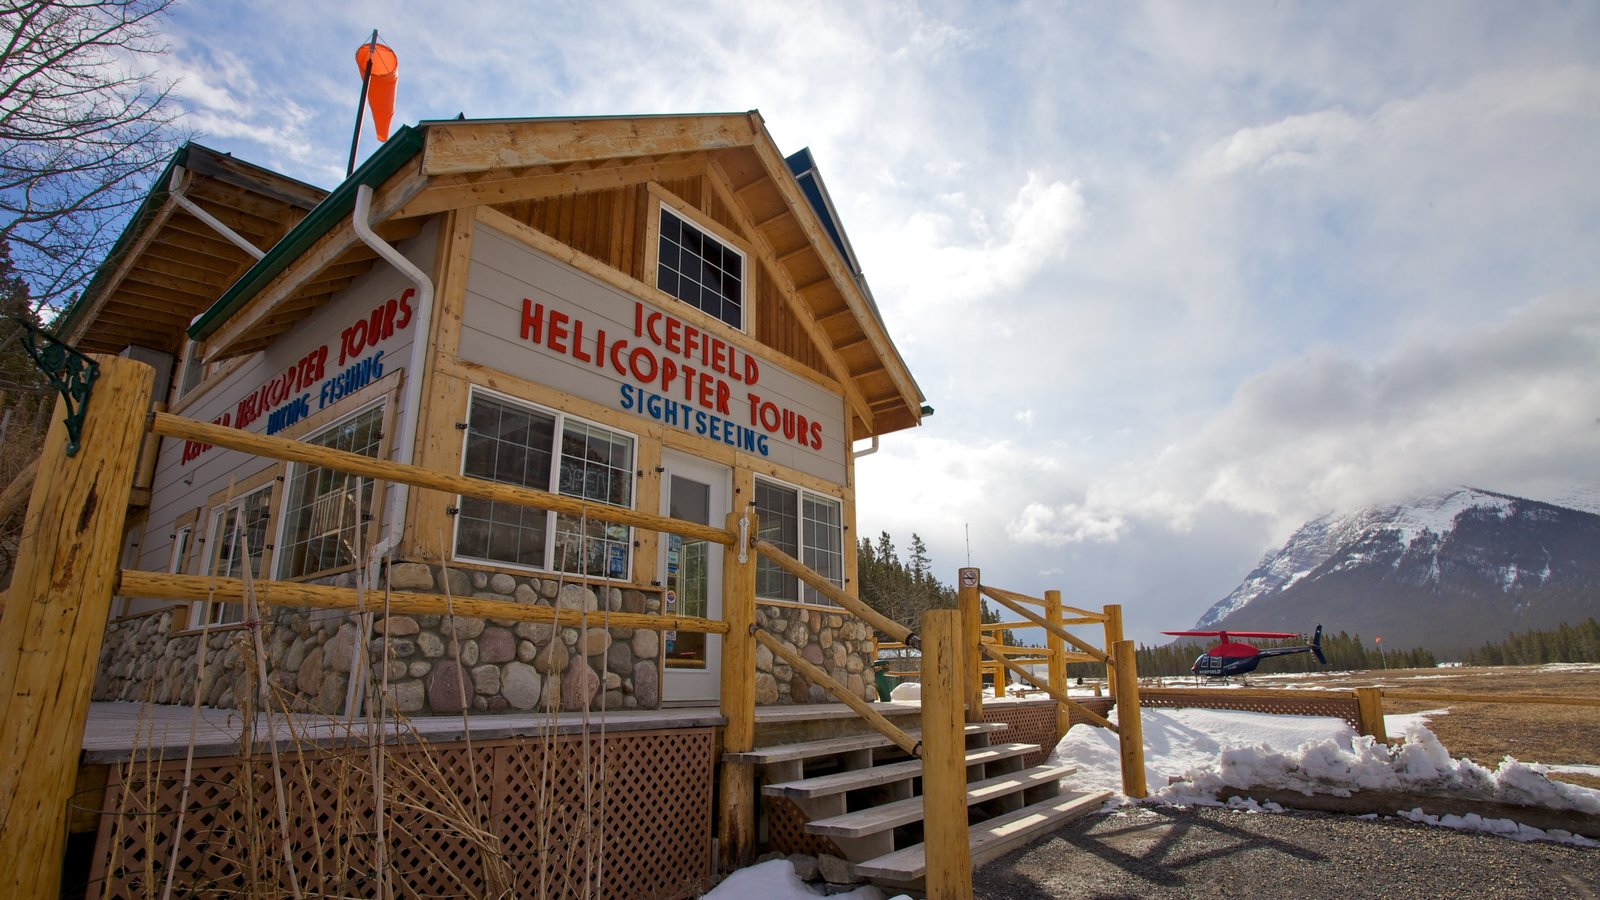 Icefields Parkway featuring snow, signage and aircraft